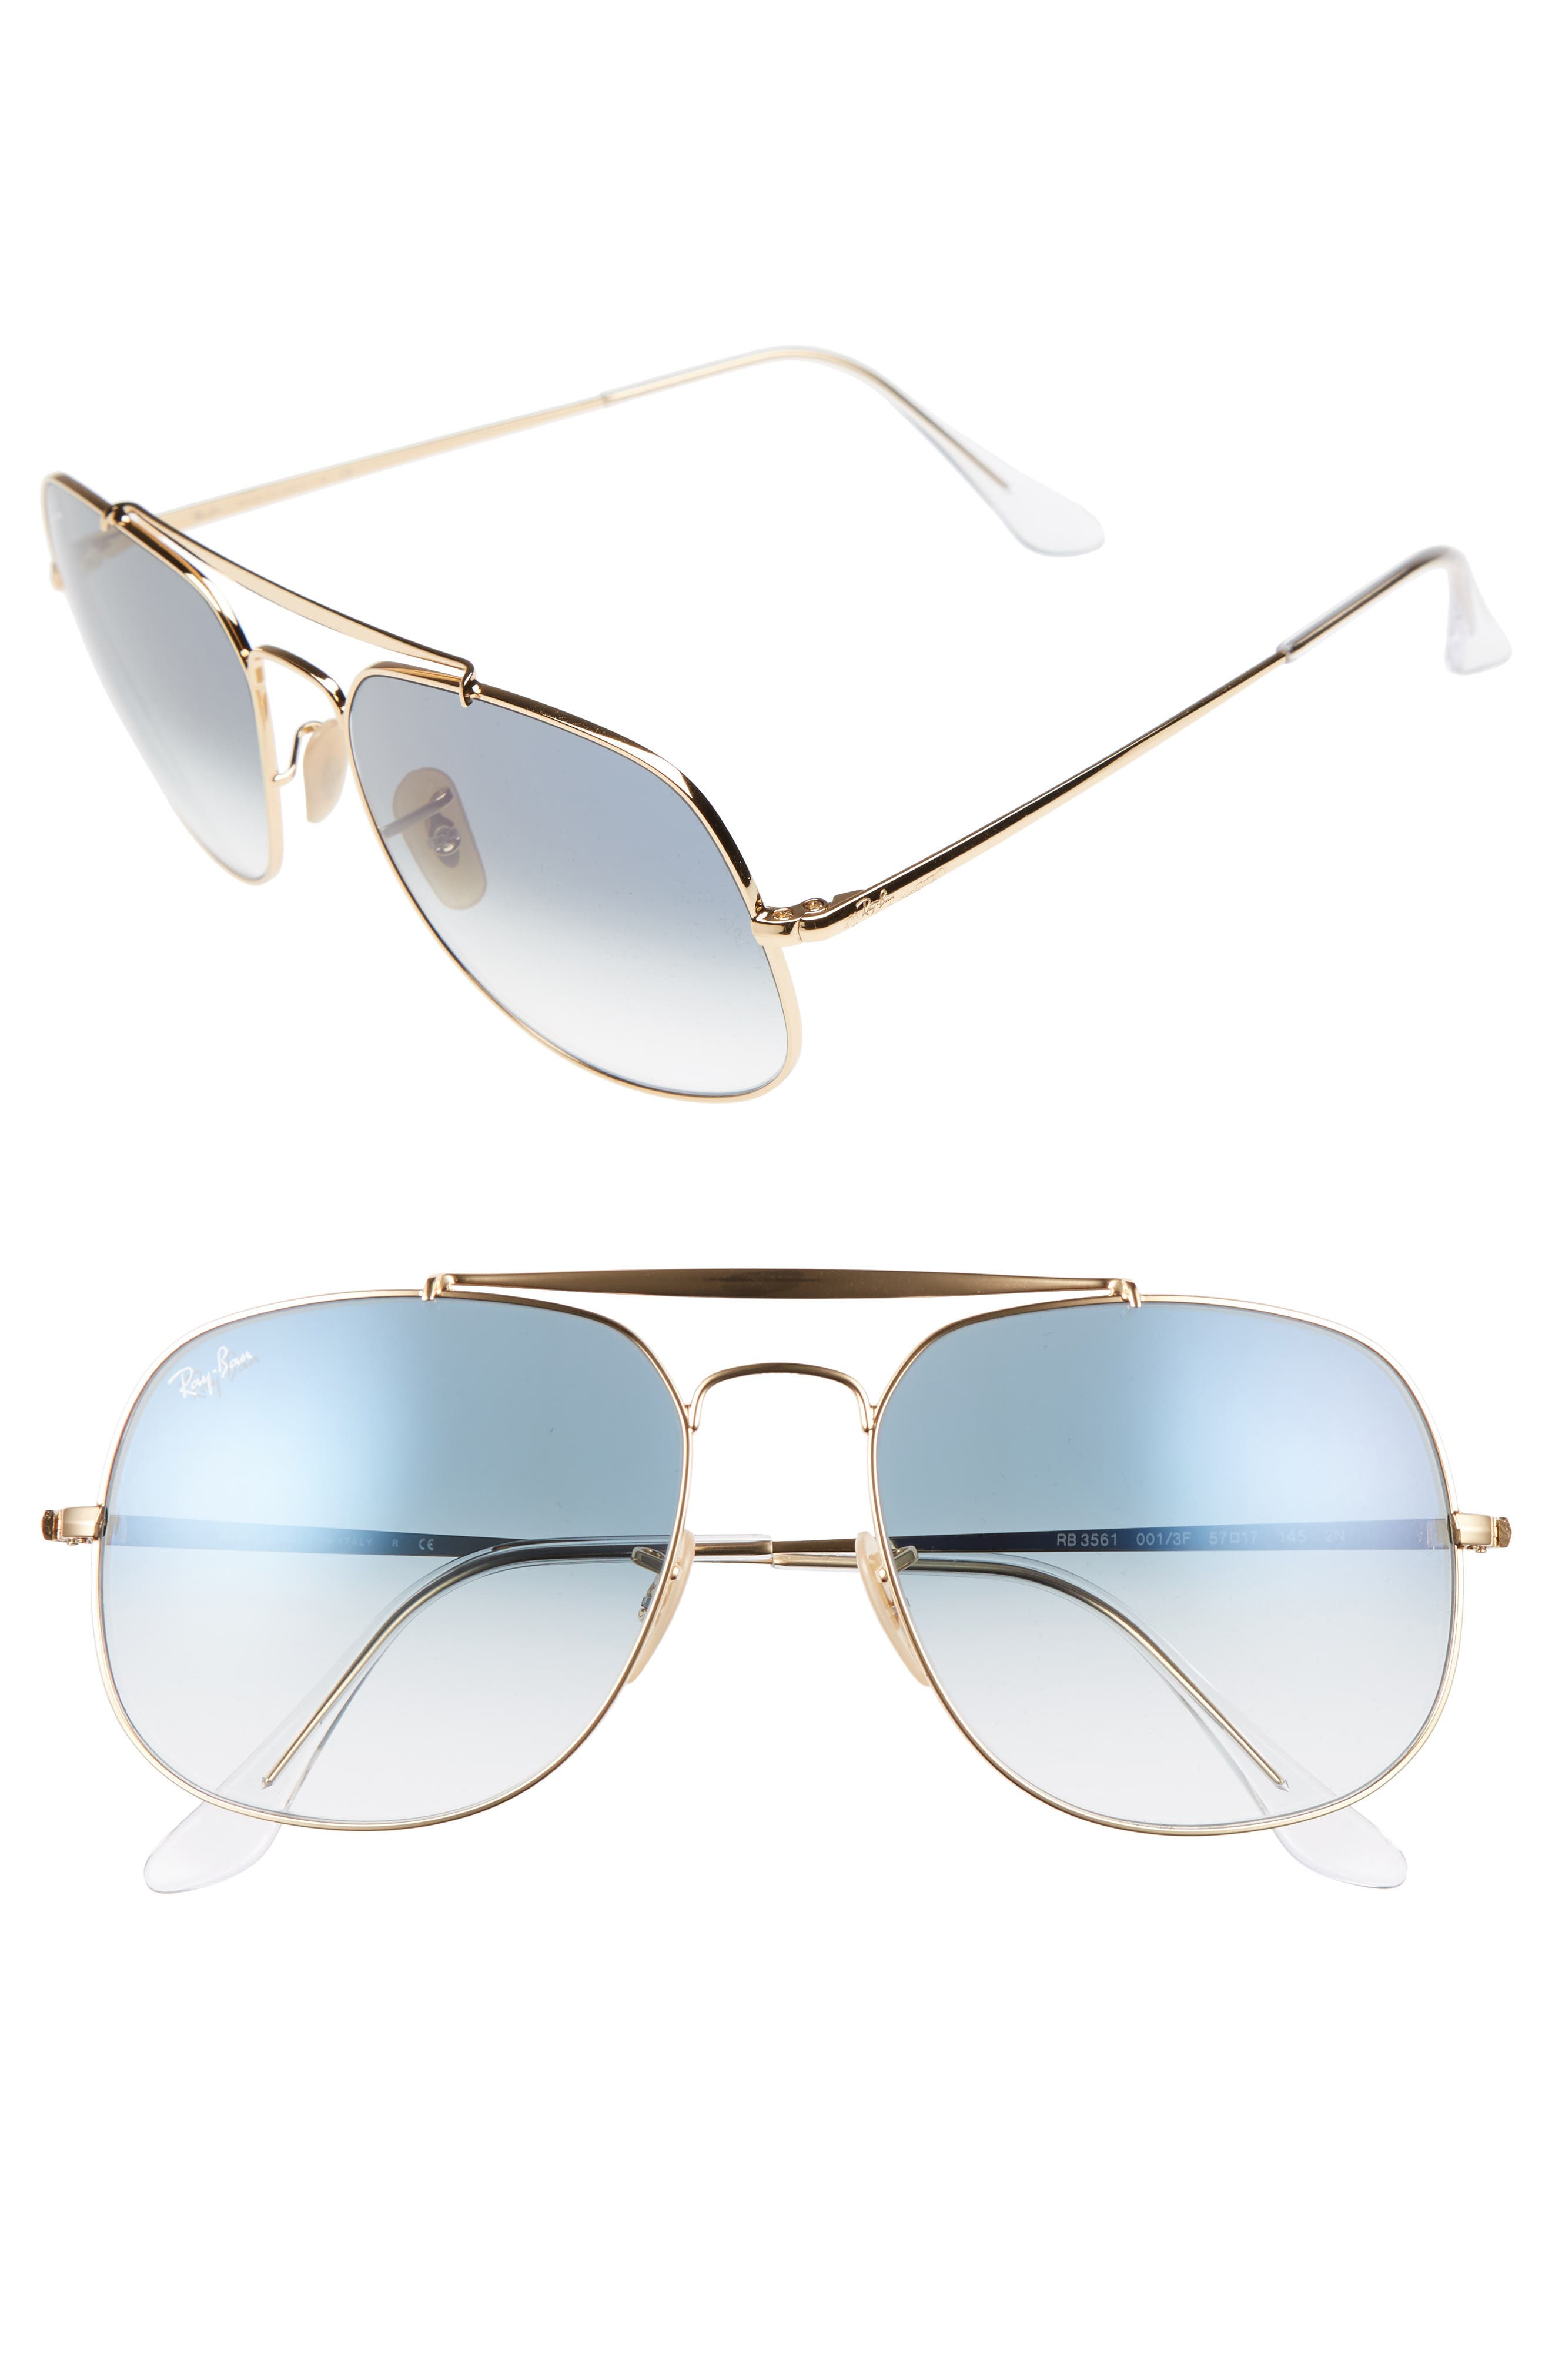 Ray-Ban 57mm Navigator Sunglasses